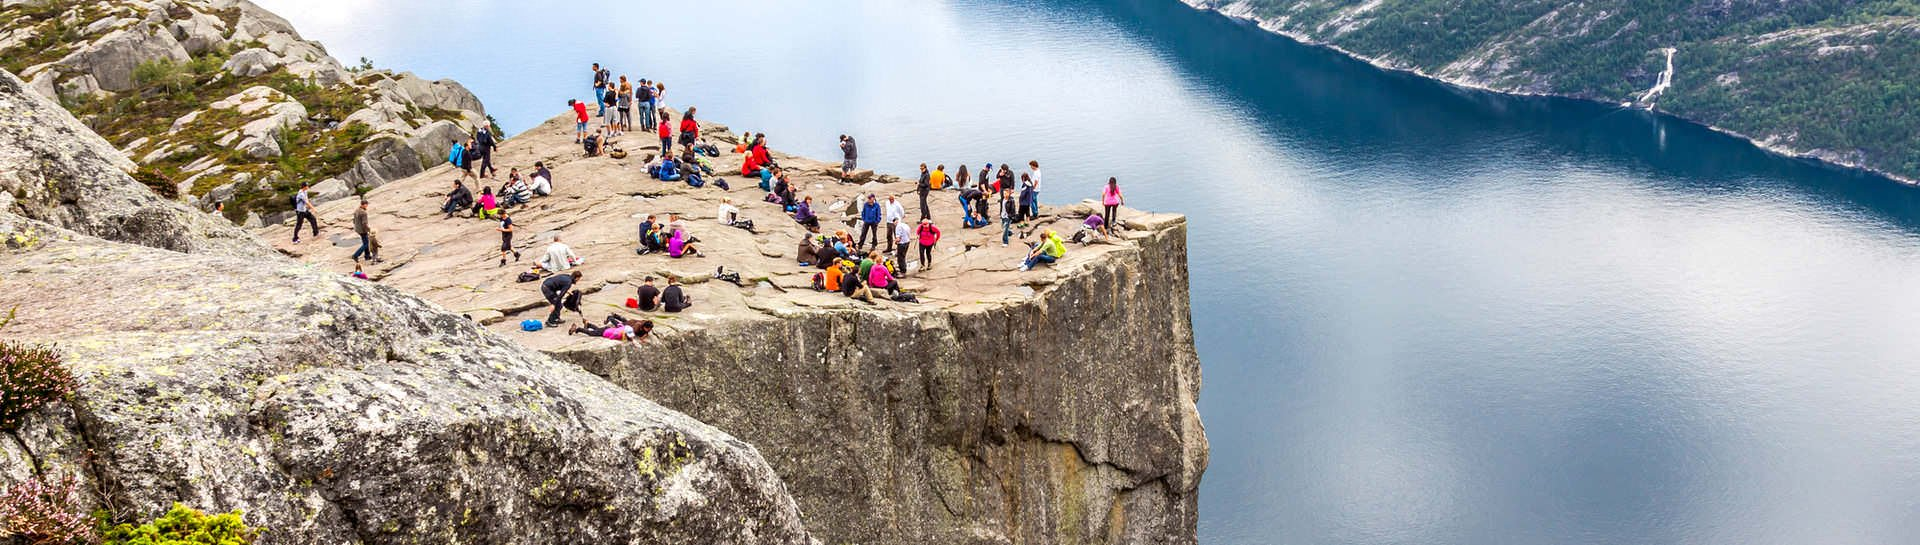 Hike up to the top of the Pulpit Rock over the Lysefjord to enjoy some of the most striking displays of Norway